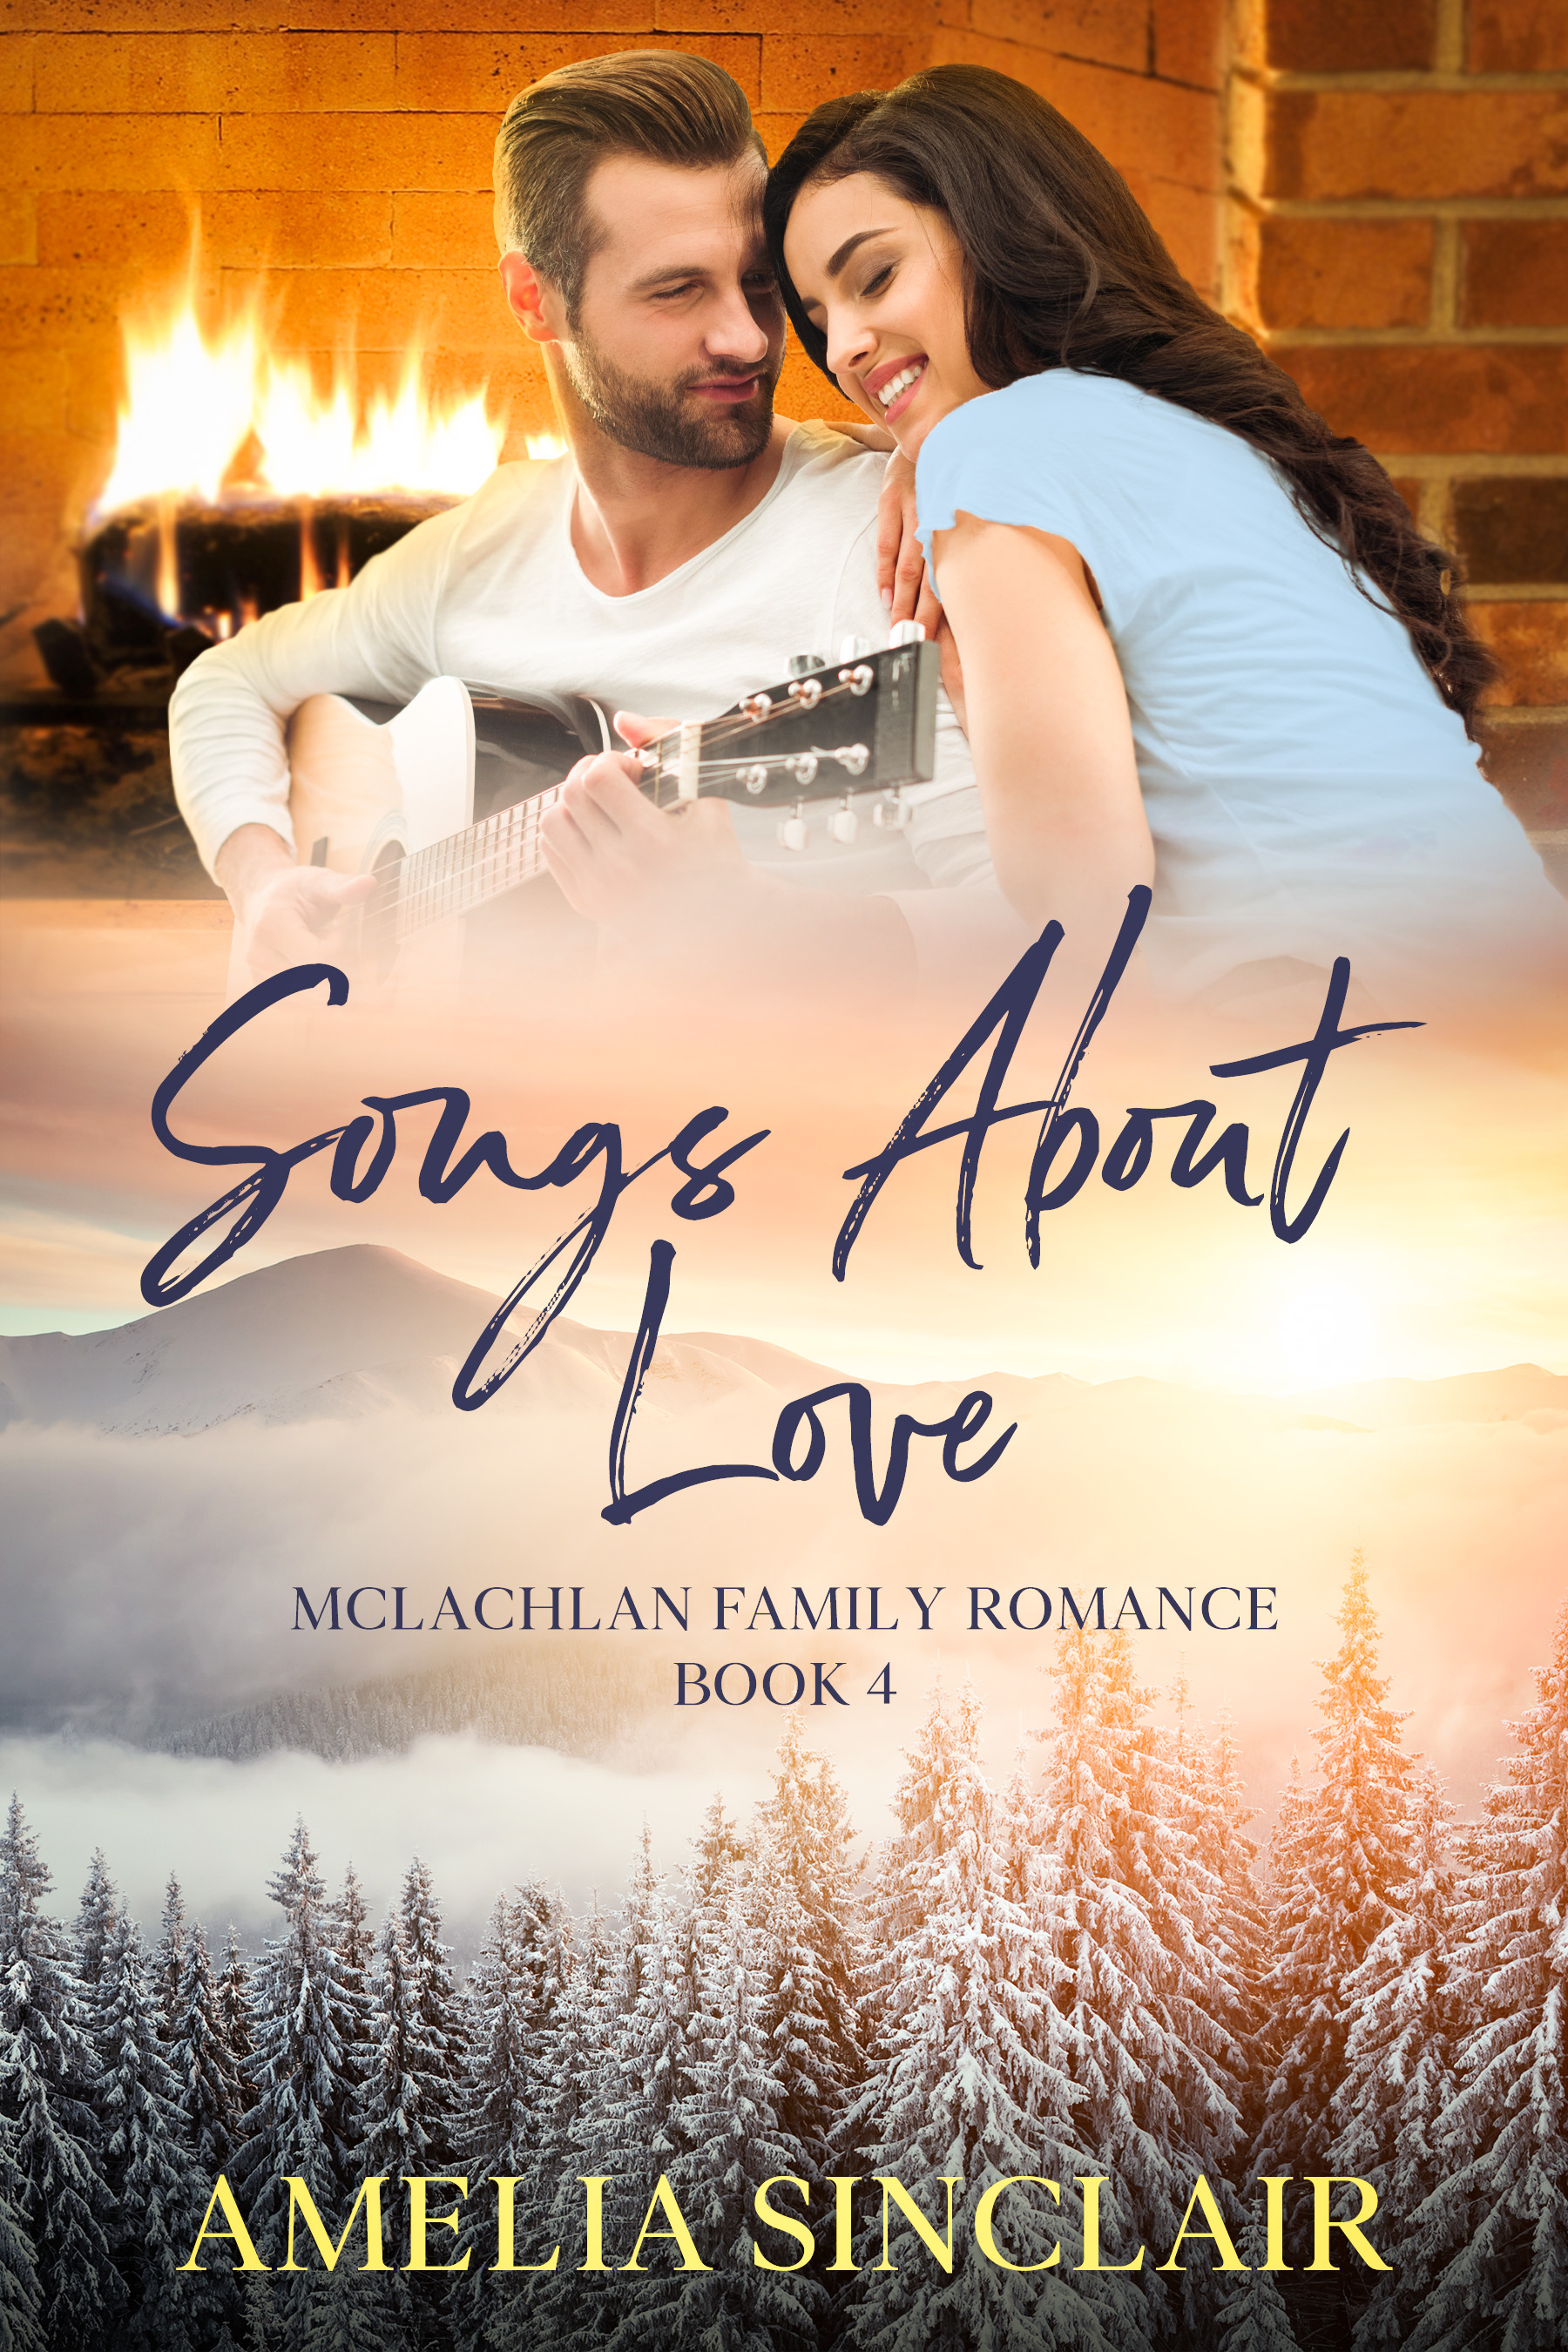 [PDF] [EPUB] Songs About Love Download by Amelia Sinclair